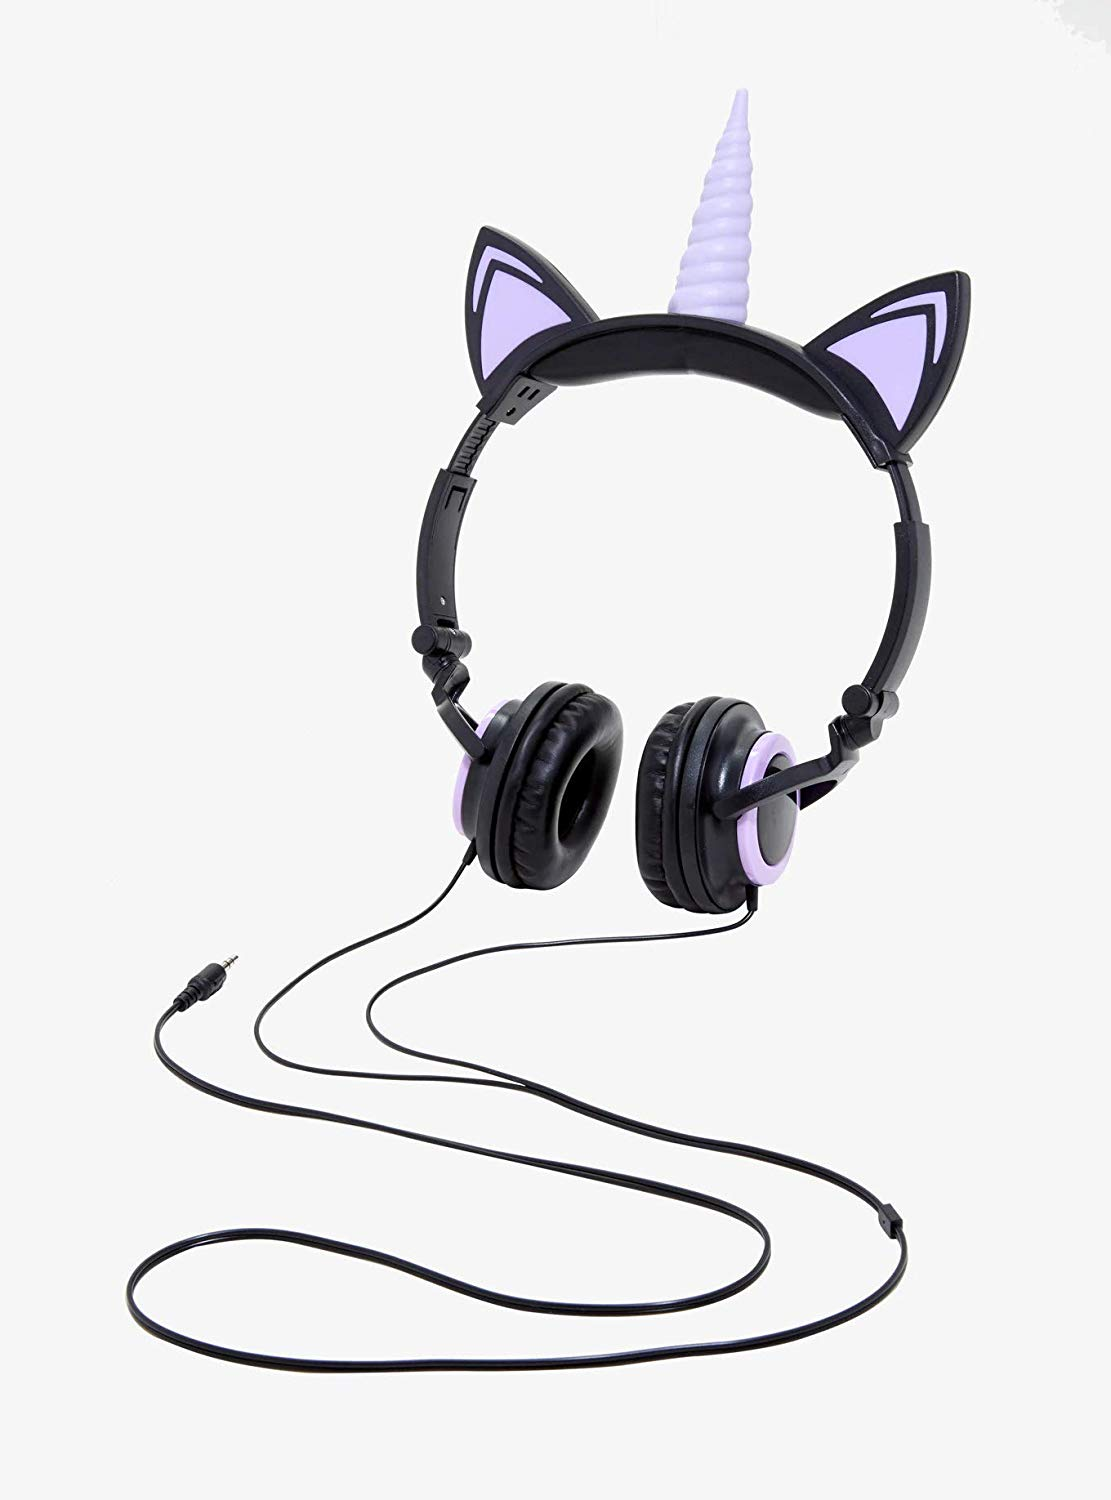 Cool gifts for tween girls: Unicorn headphones that light-up too!